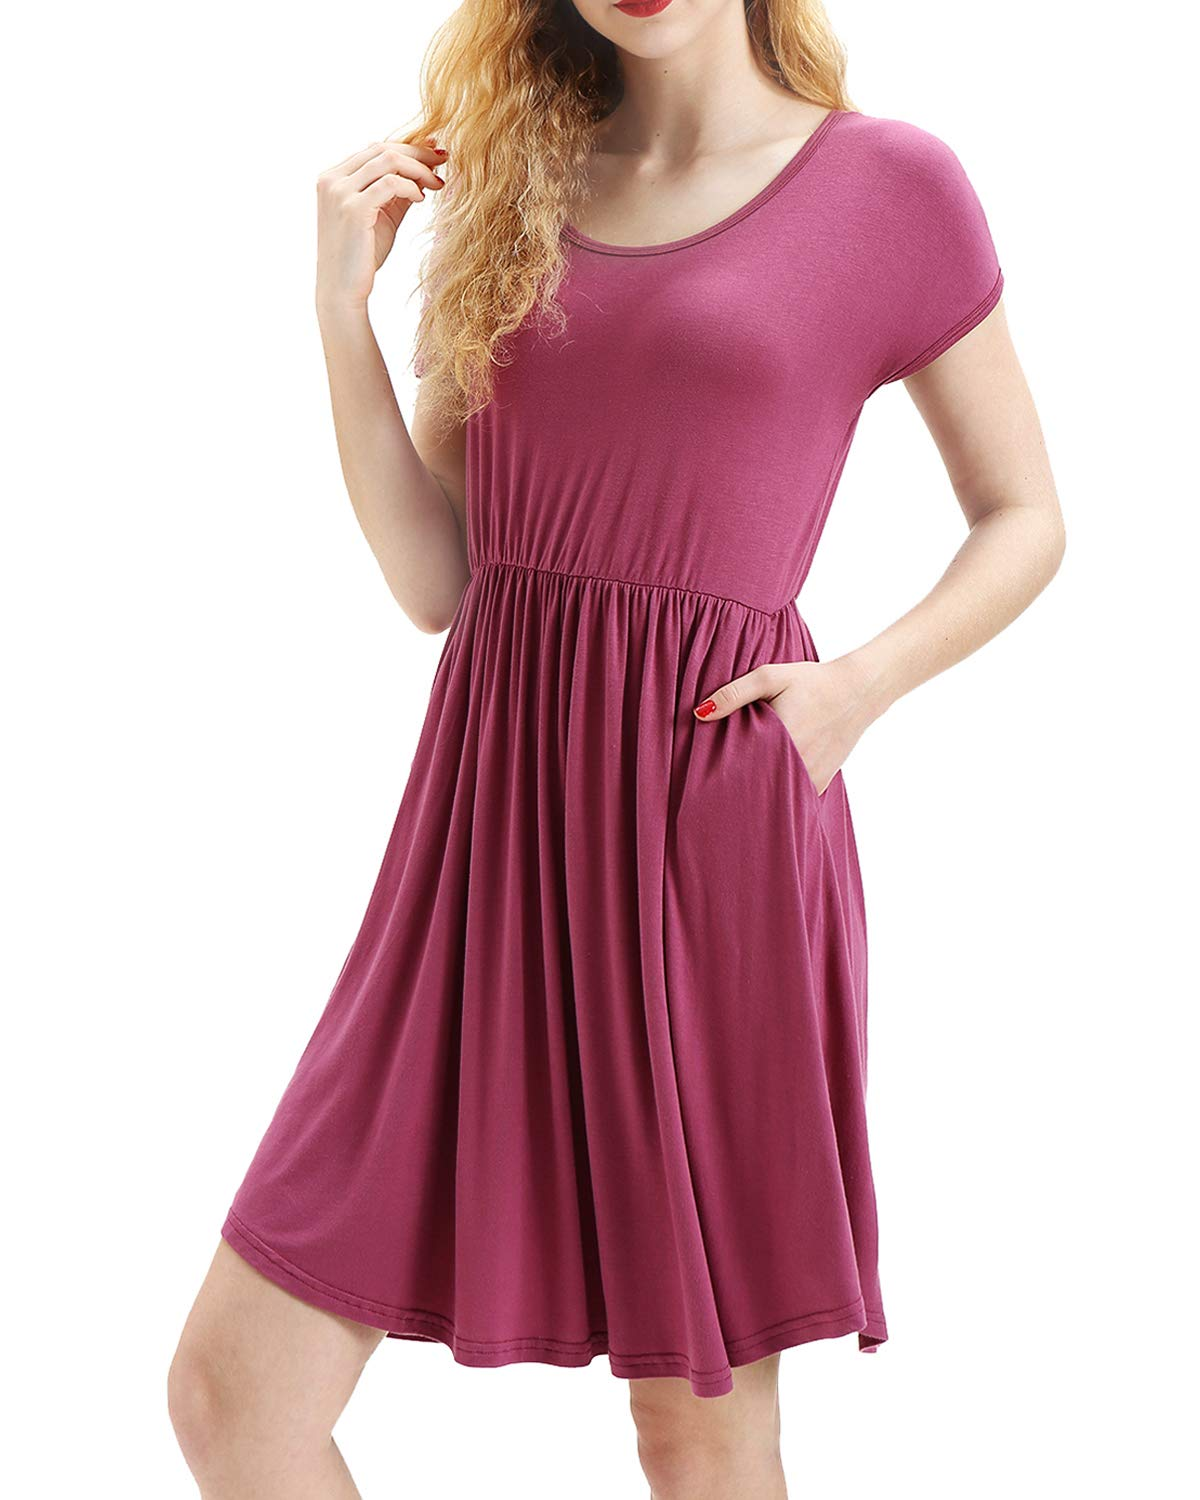 deesdail Tunic Dresses for Women to Wear with Leggings, Ladies Scoop Neck Short Sleeve Midi Dresses Long Tunic with Pockets Knee Length Shirts Mauve M